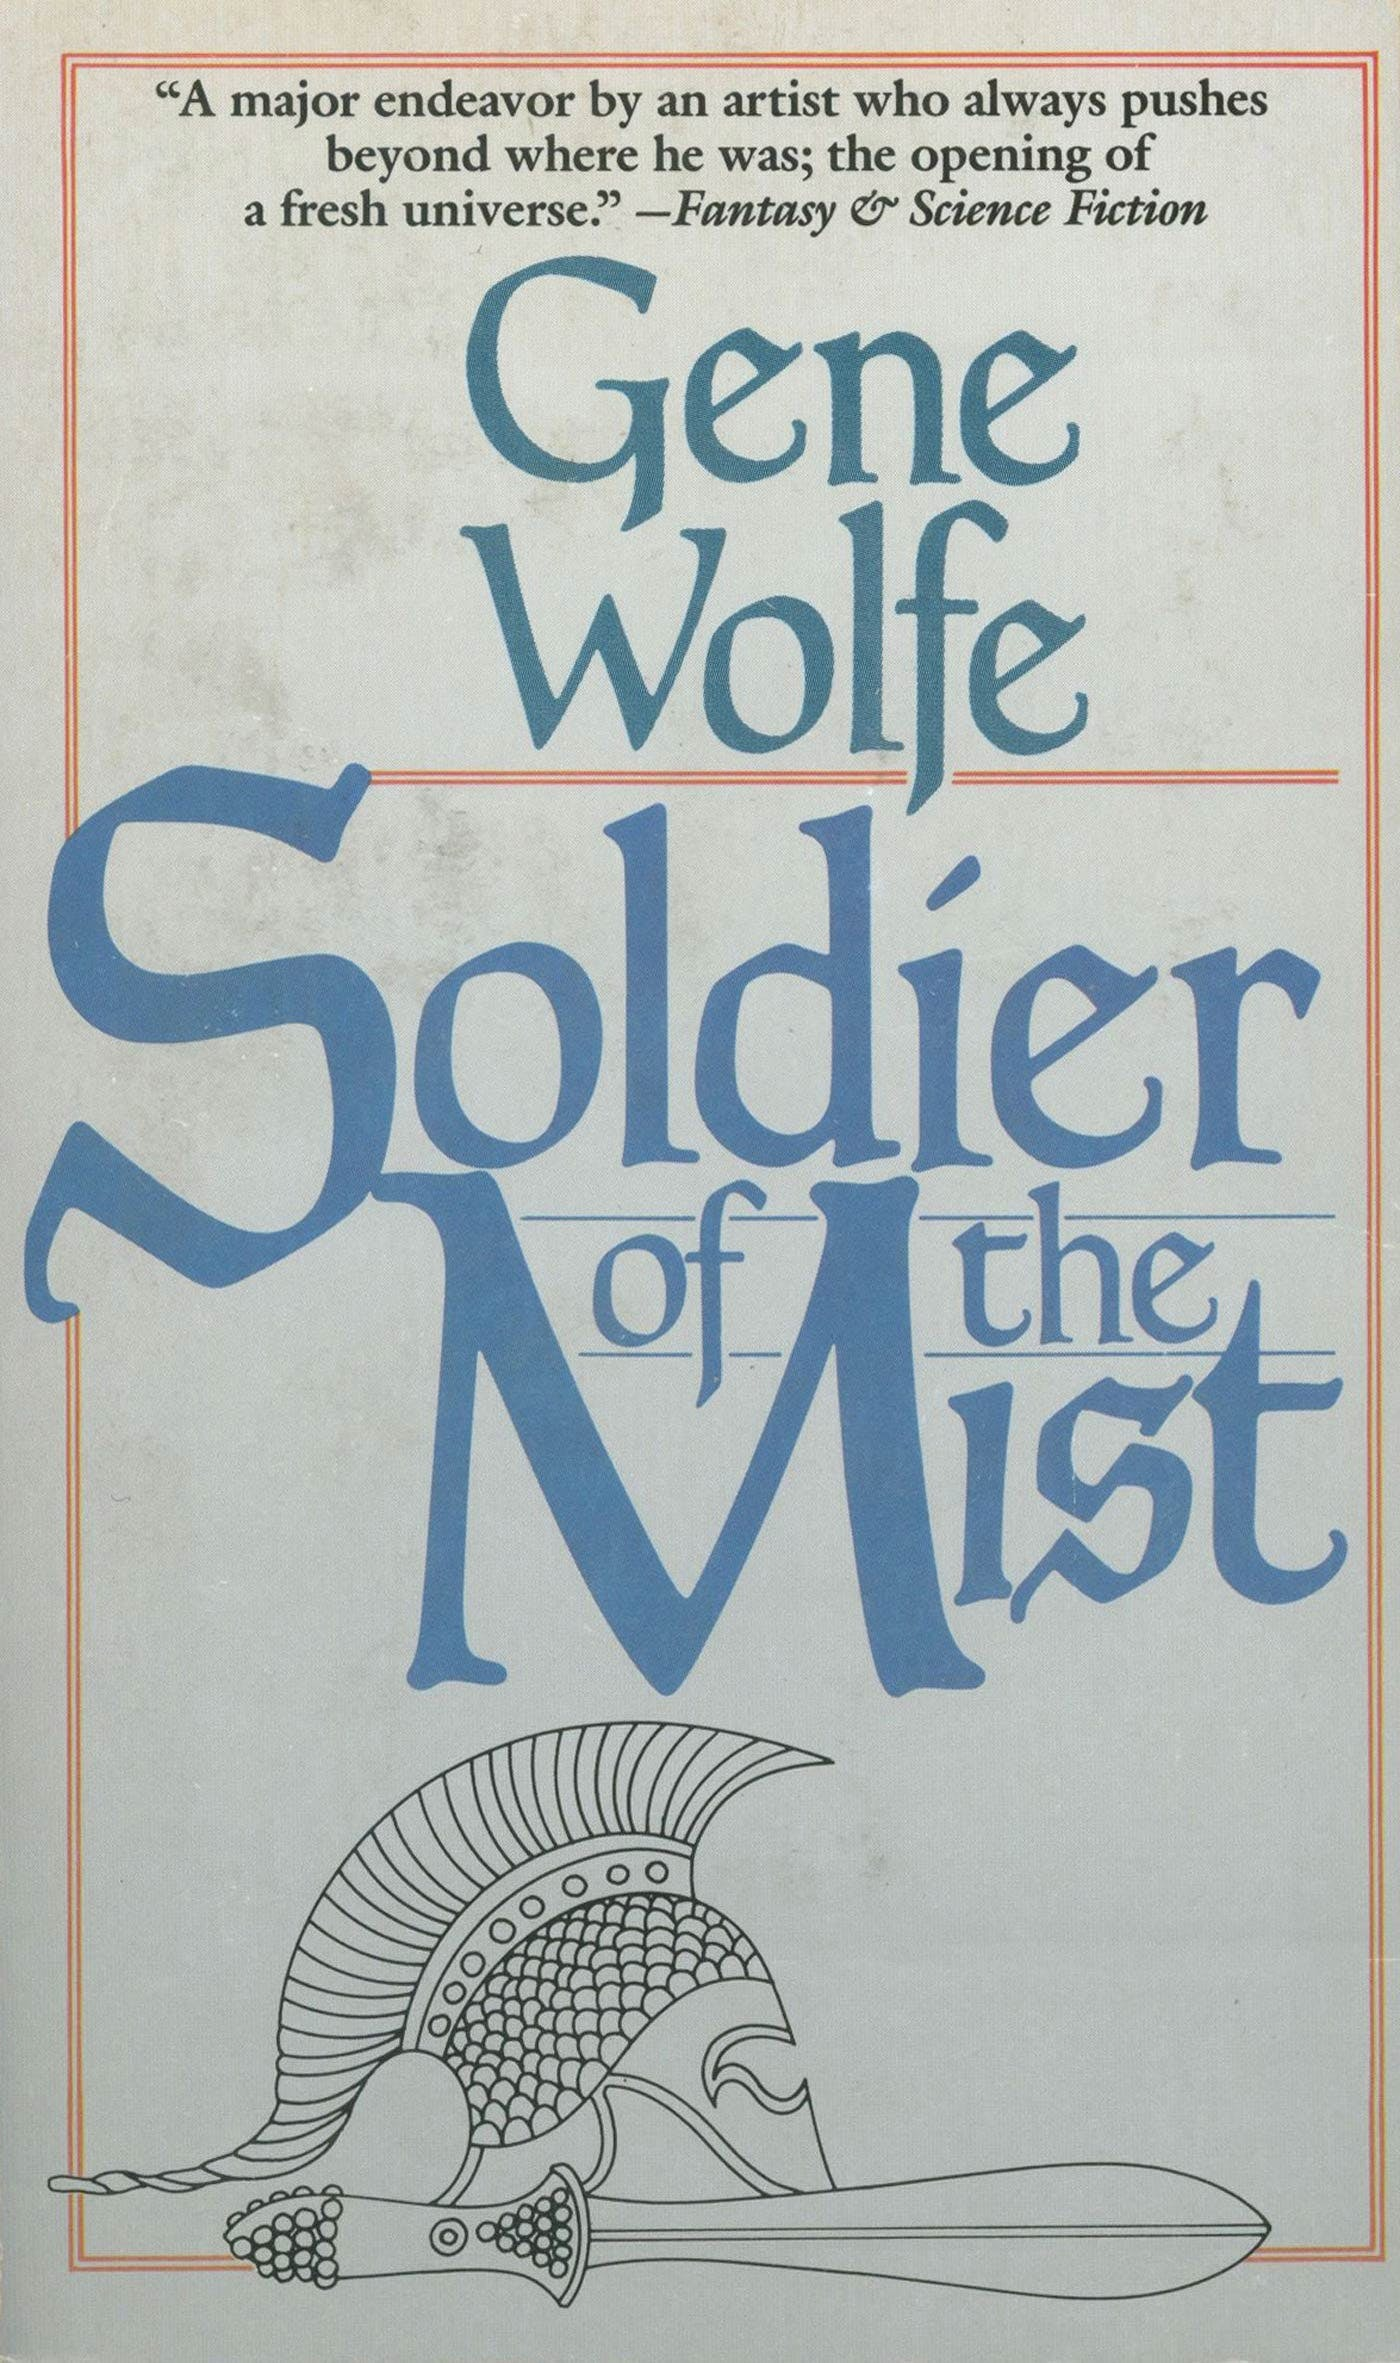 Image of Soldier of the Mist